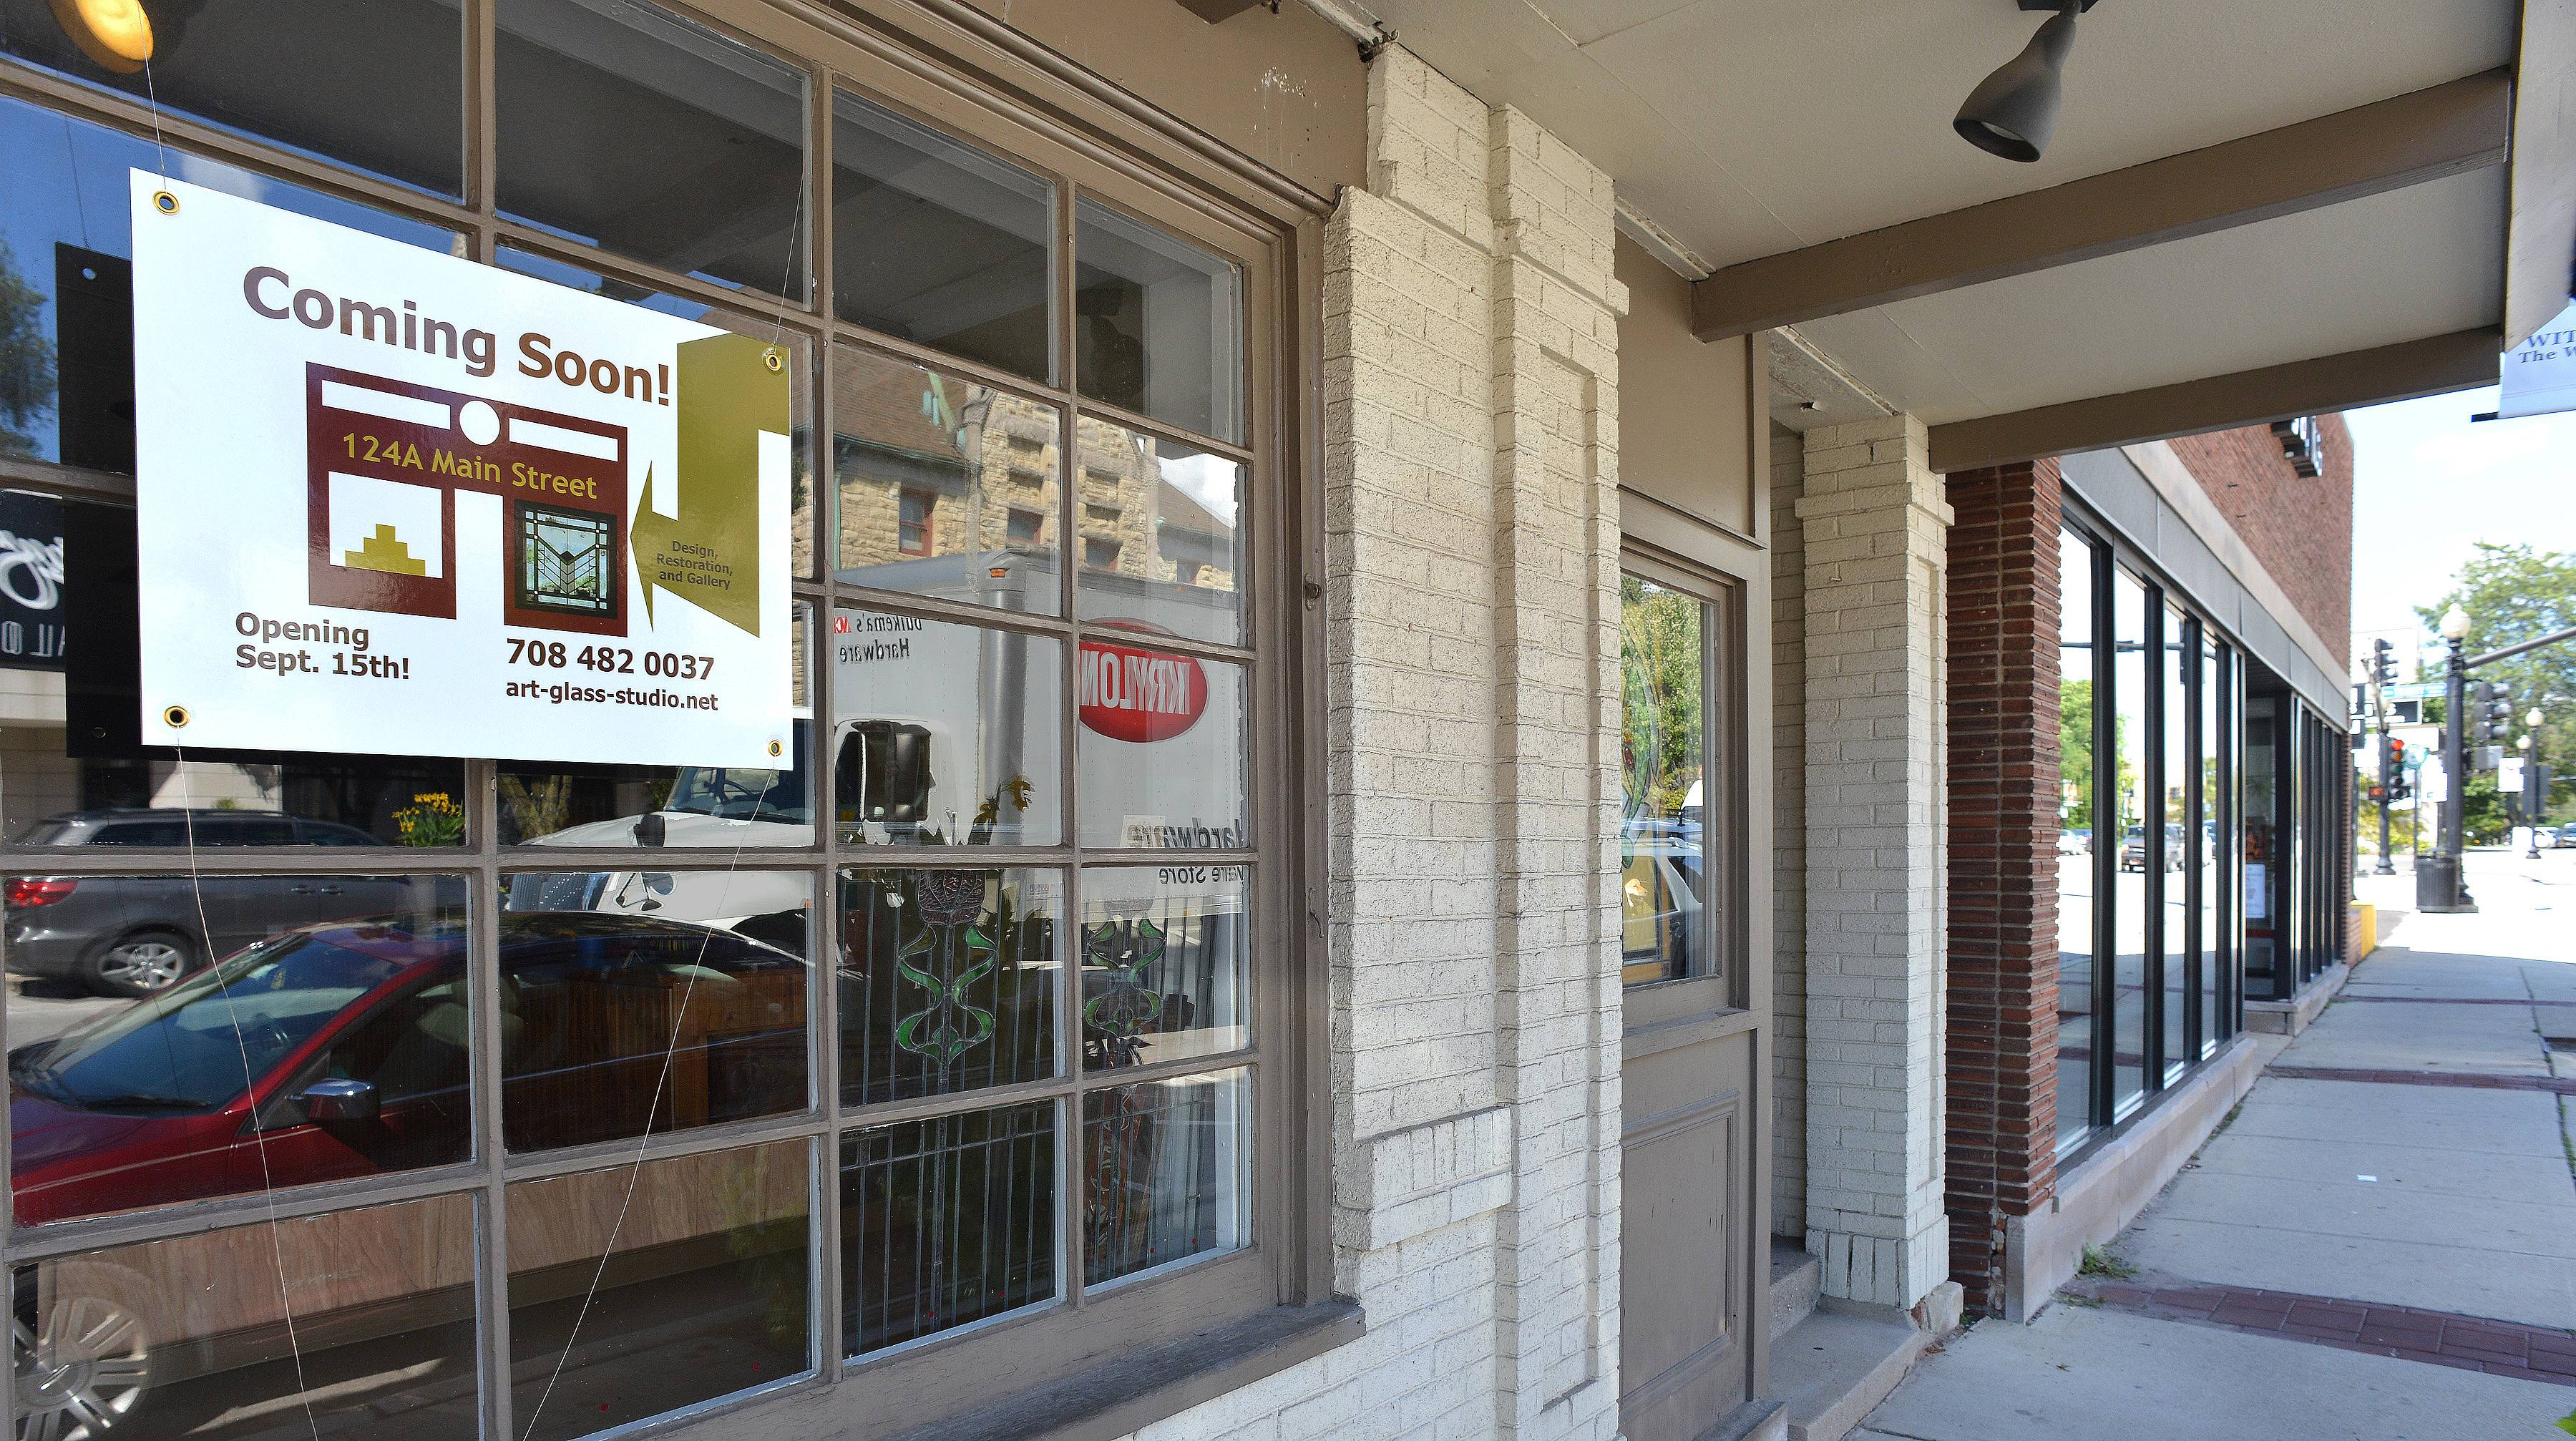 Several new businesses are moving into downtown Wheaton, including Art & Glass Studio at 124 N. Main Street.